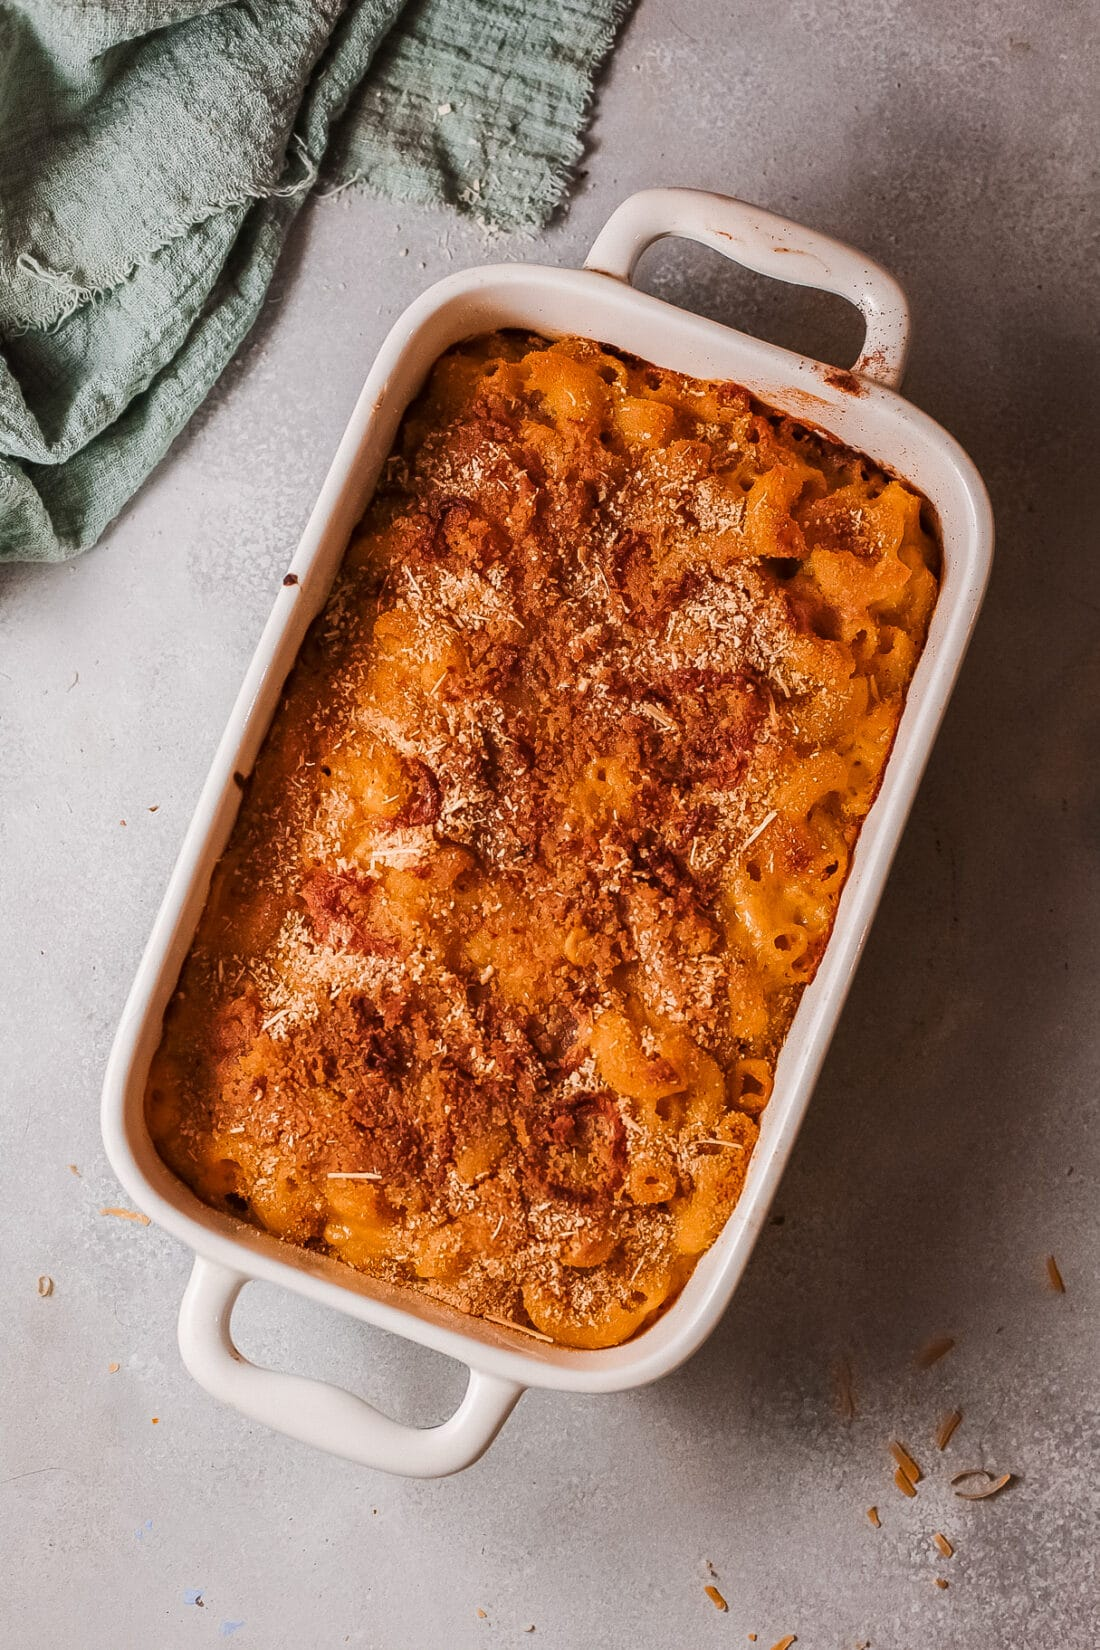 Baked Pumpkin Mac and Cheese In Pan. This Easy Baked Pumpkin Mac and Cheese is ultra-creamy, perfectly cheesy, and gooey. Topped with a crispy parmesan breadcrumb crust it's the perfect fall dish for the whole family.